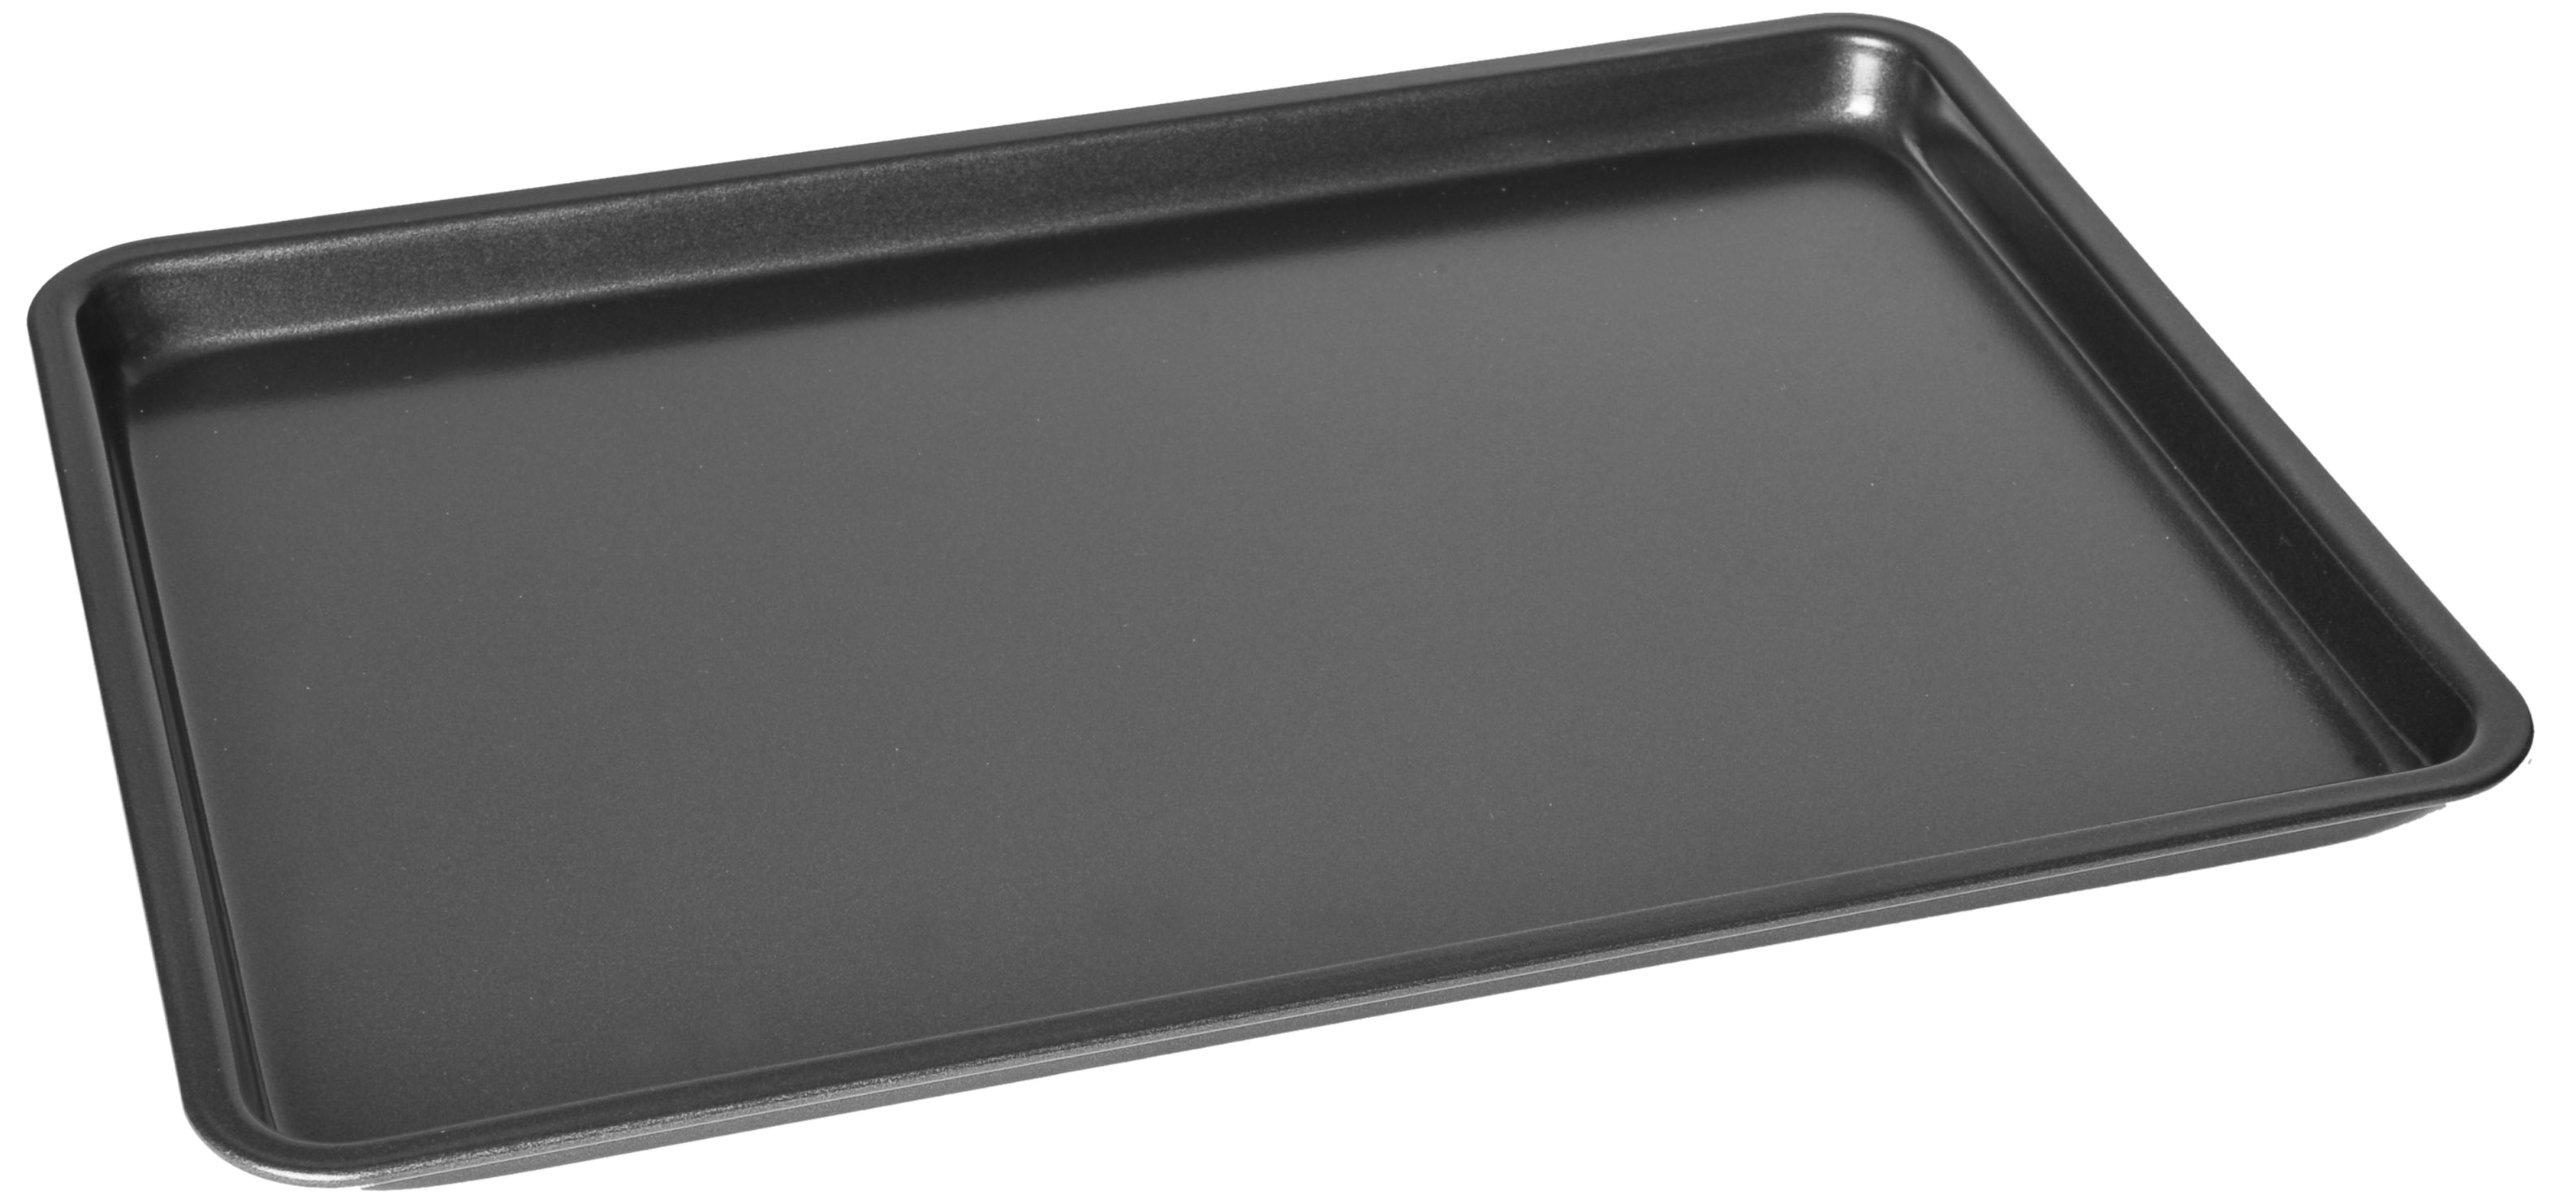 Chloe's Kitchen 201-119 Jelly Roll Pan, 9-1/4-Inch by 13-Inch, Non-Stick